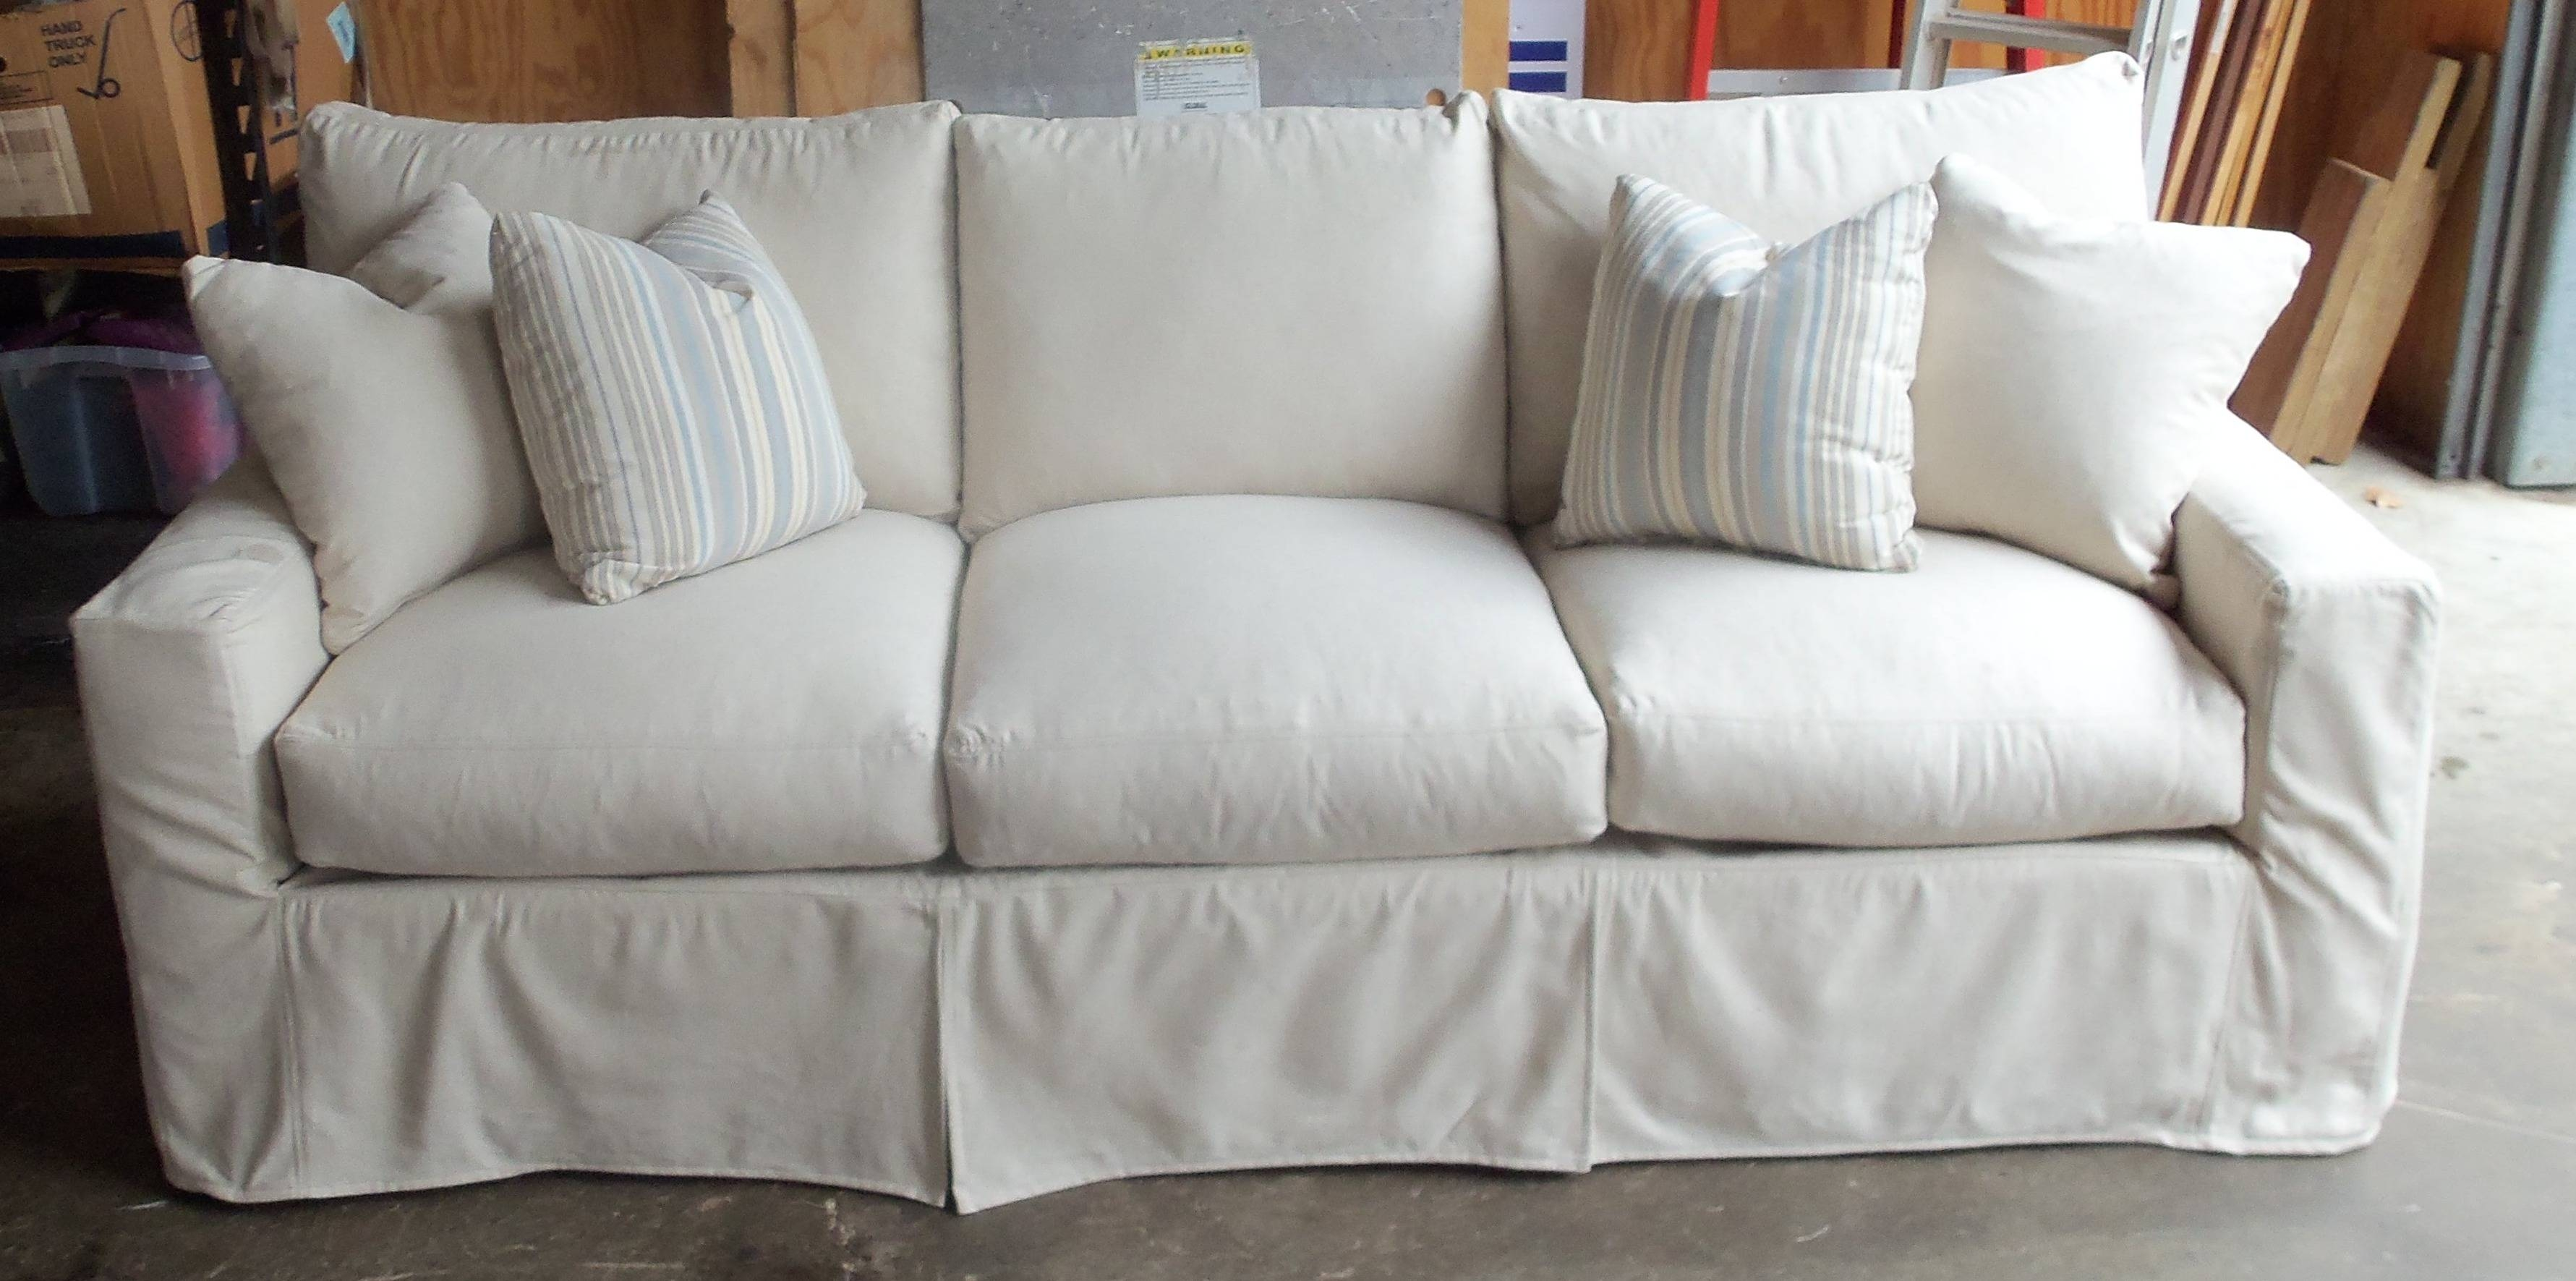 30 Best Collection of Slipcovers for Sofas and Chairs